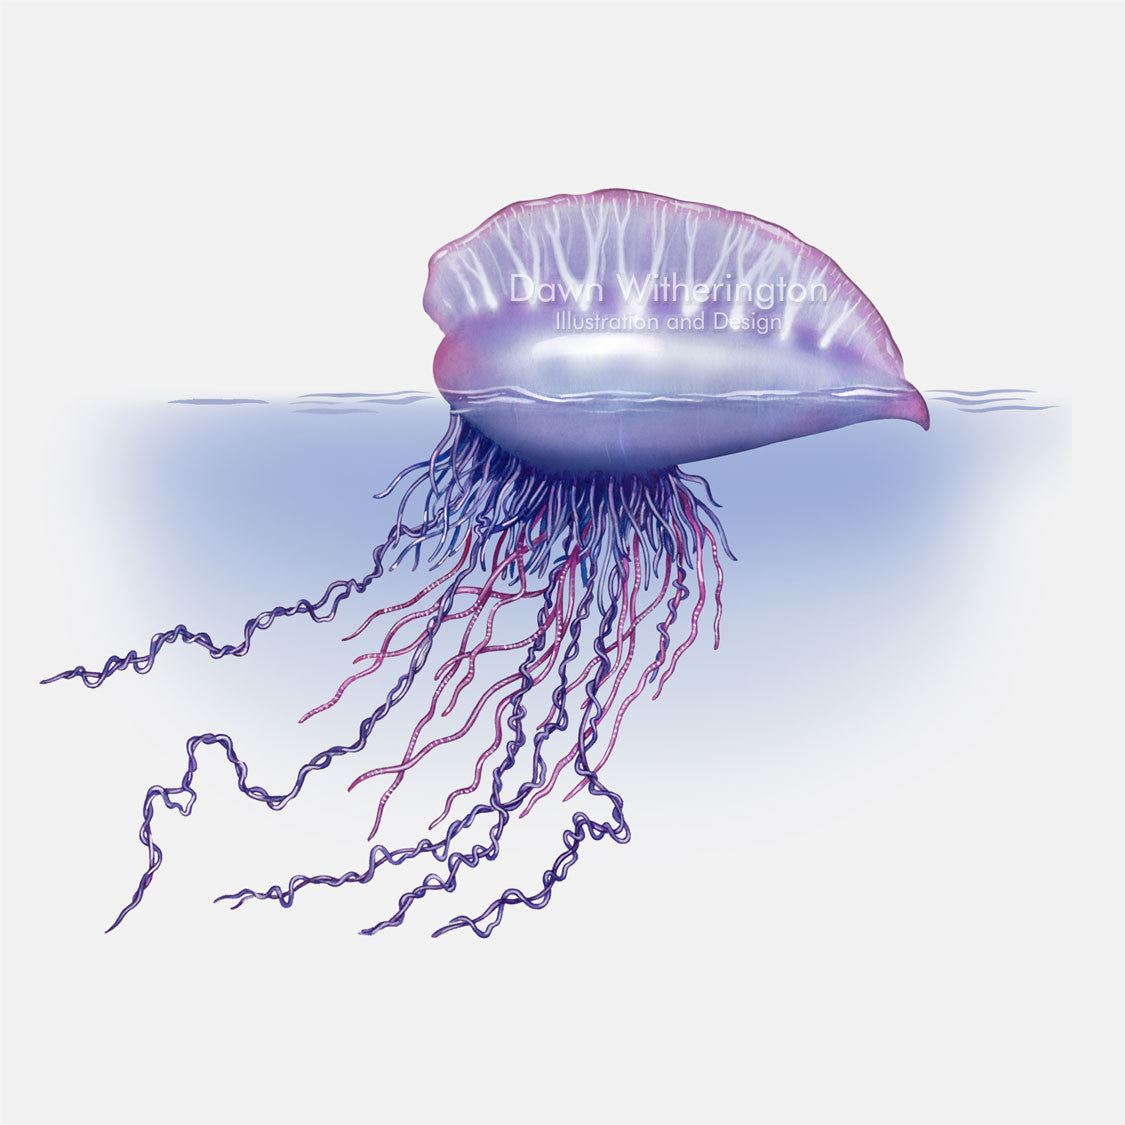 This beautiful illustration of a Portuguese man-o-war, Physalia physalis, is accurate in detail.